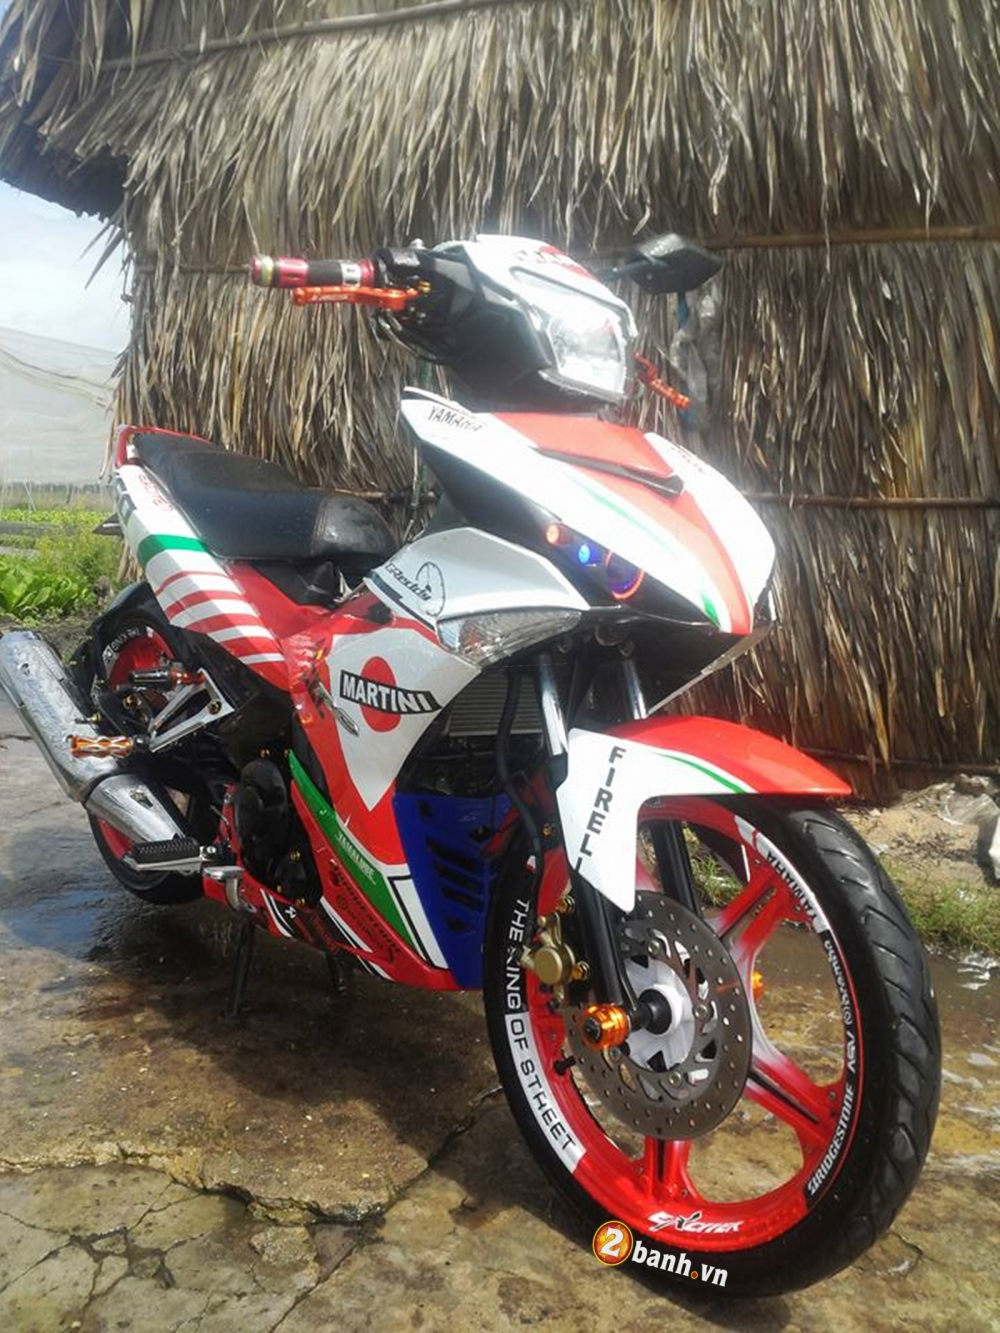 Exciter 150 nha tranh don nhe